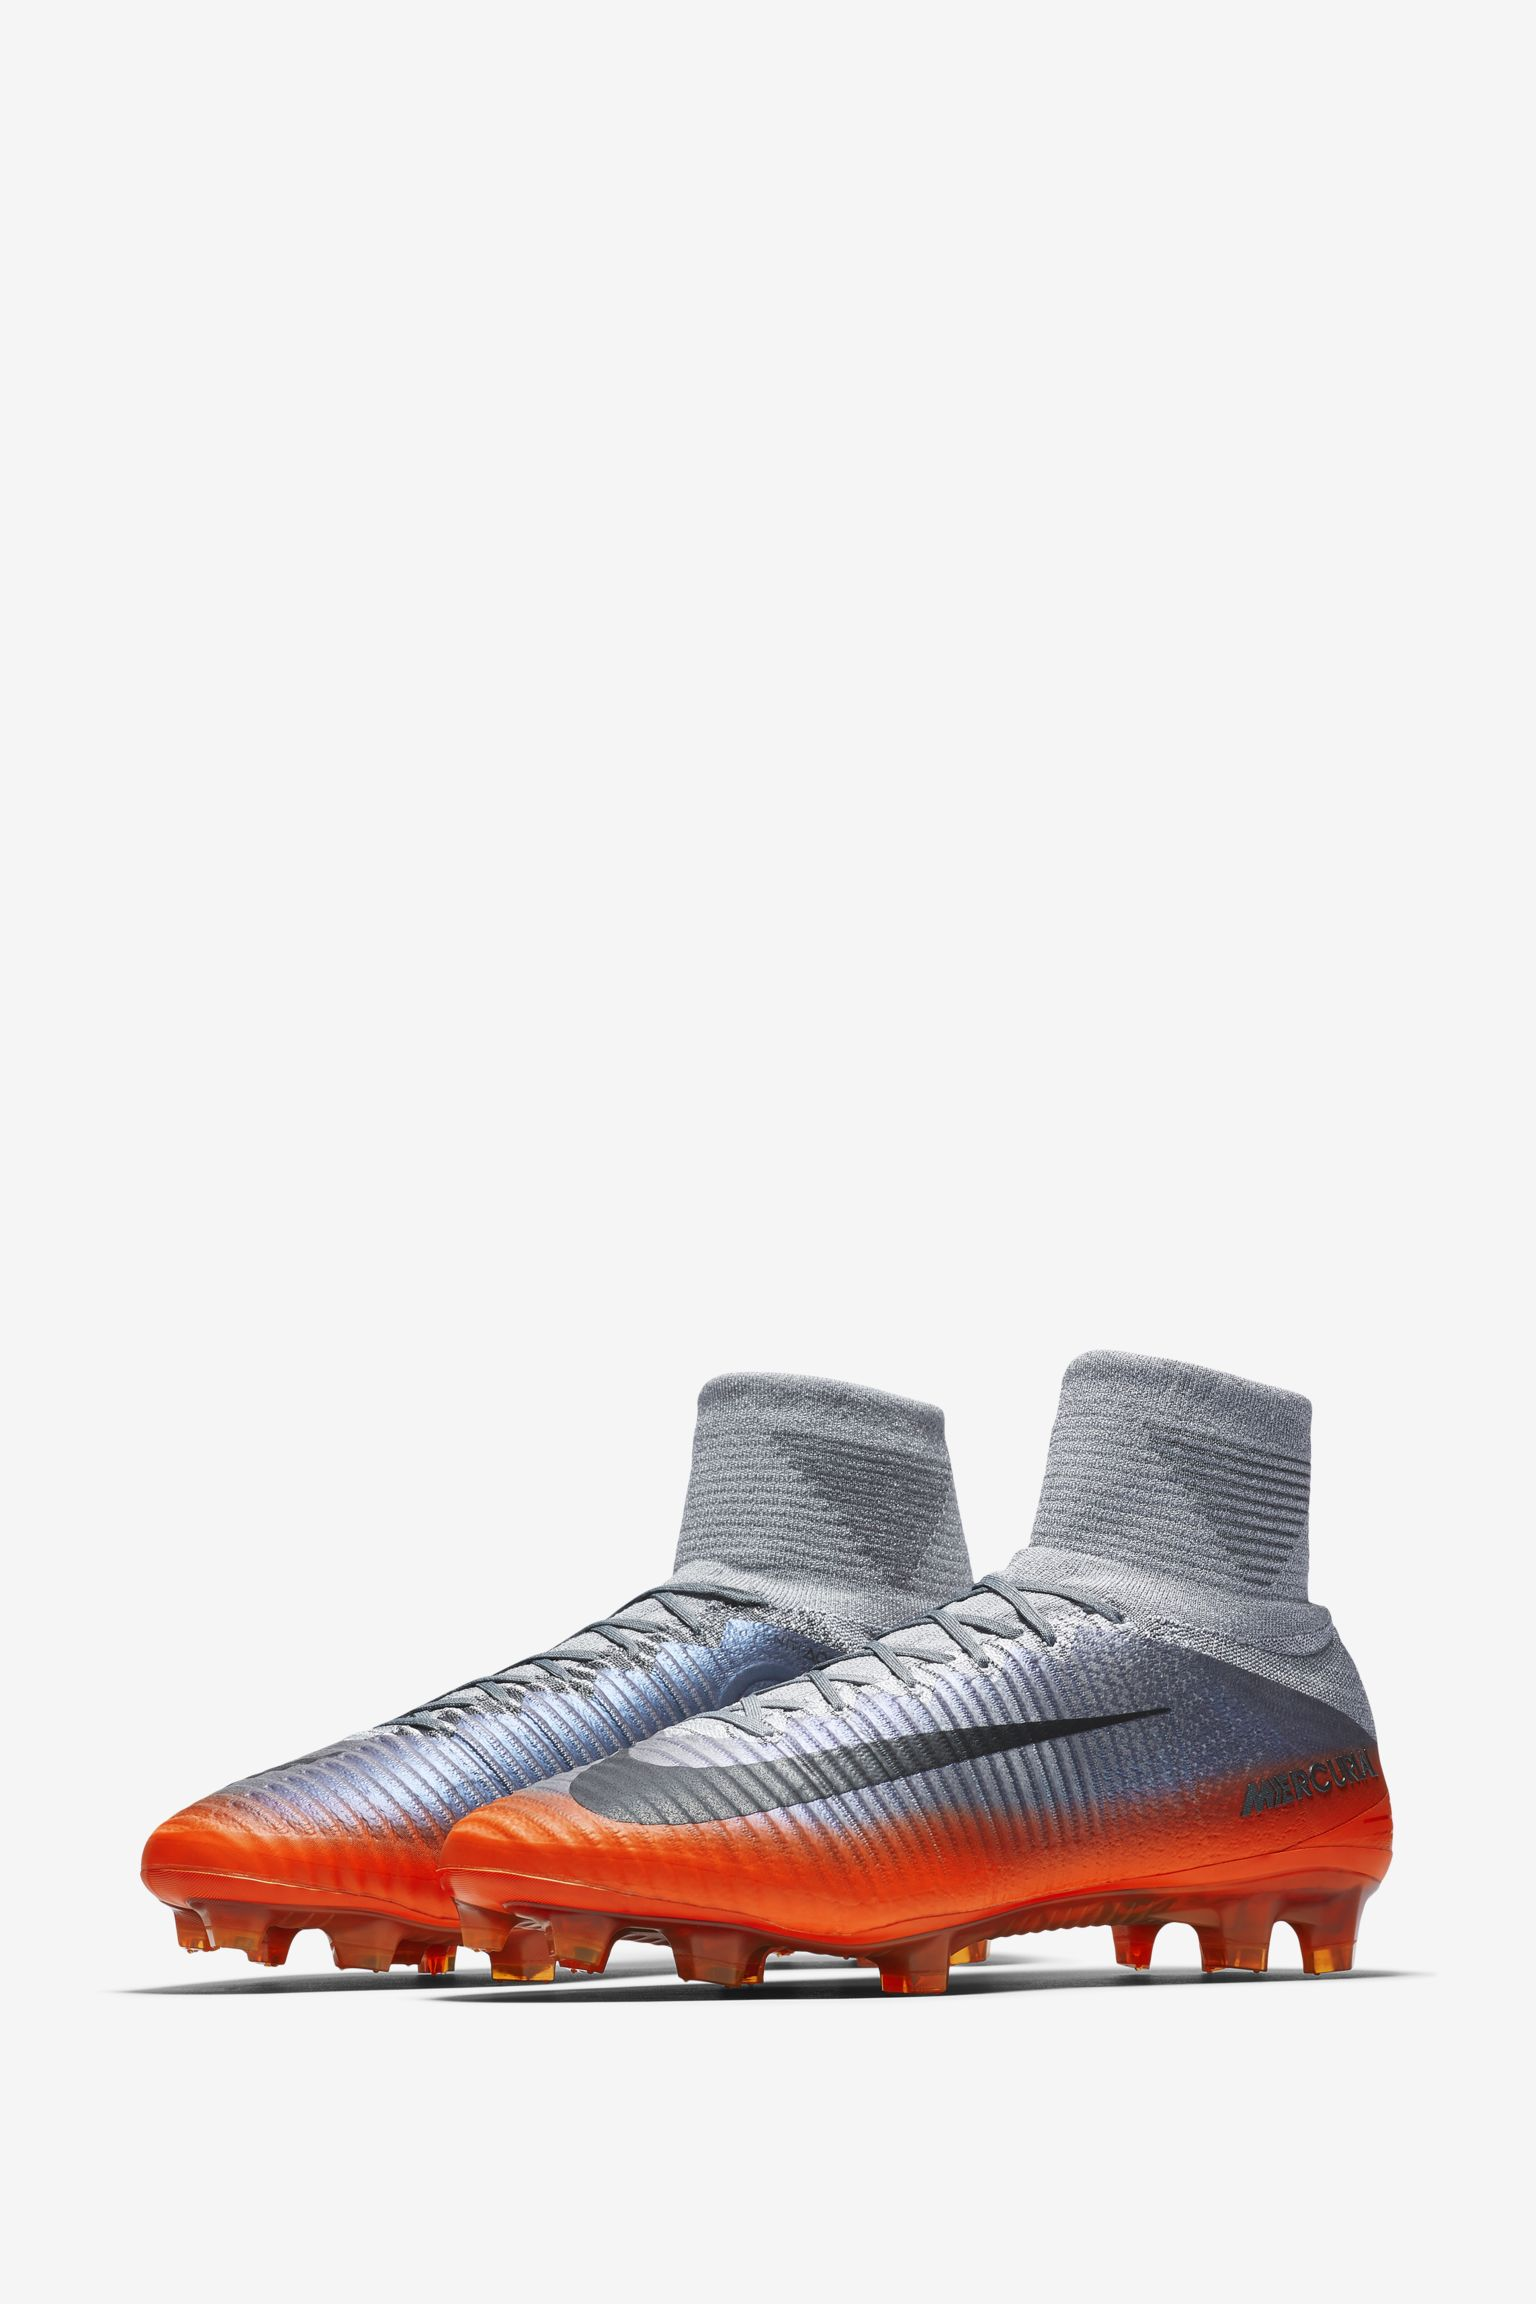 Nike Mercurial Superfly 5  CR7 Chapter 4Forged For Greatness  Nike Soccer  Bootroom